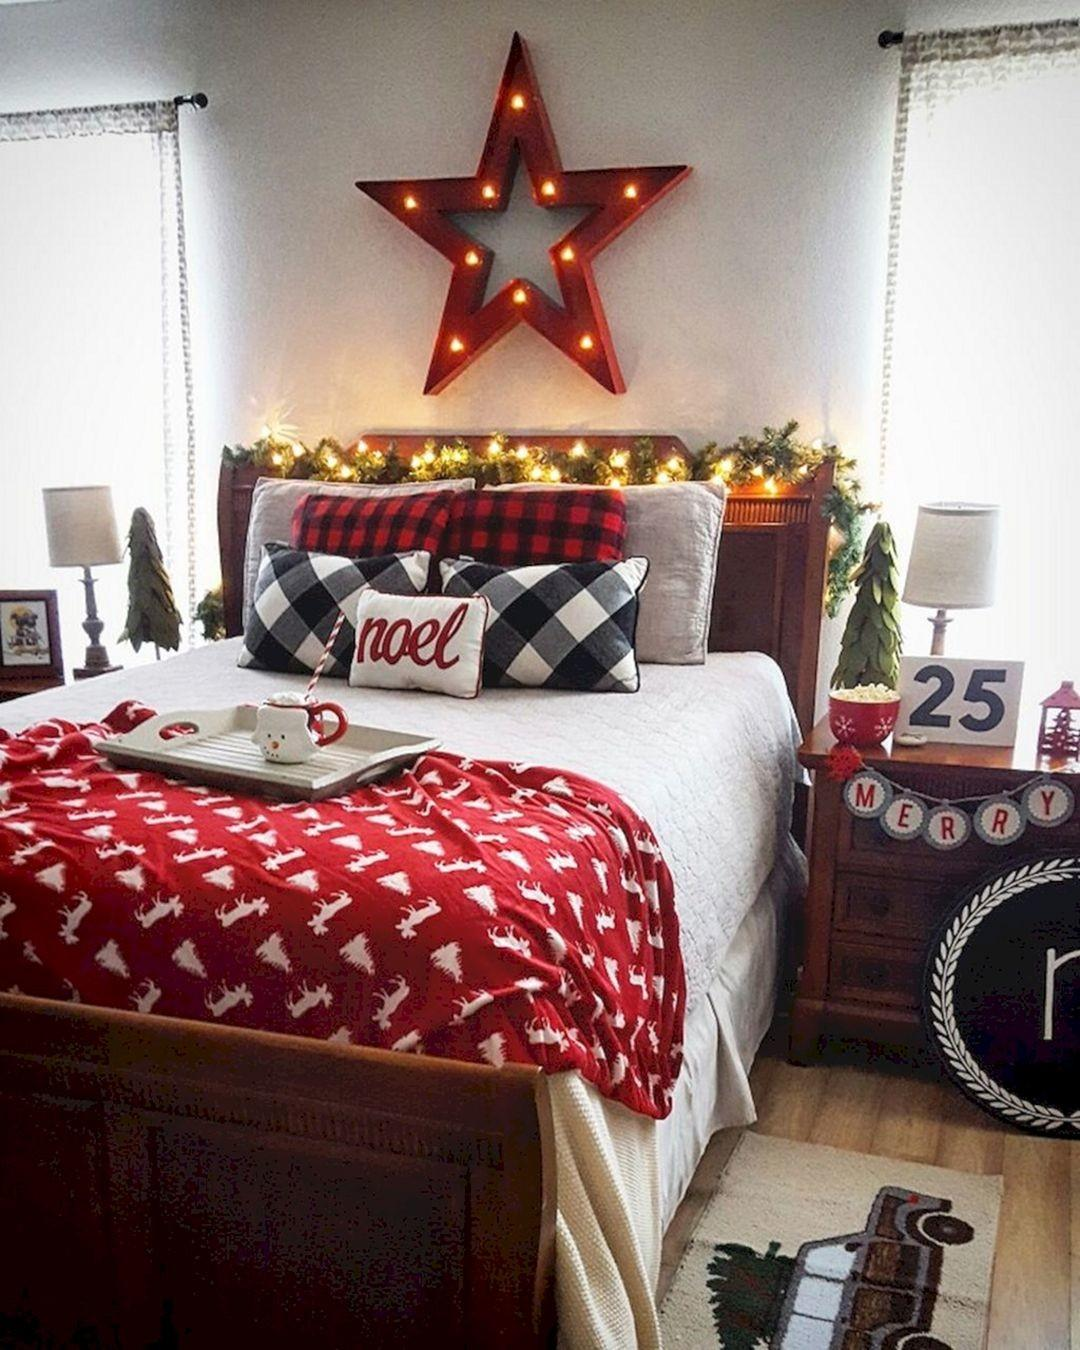 Adorable Interior Themed Christmas Bedroom Decorating